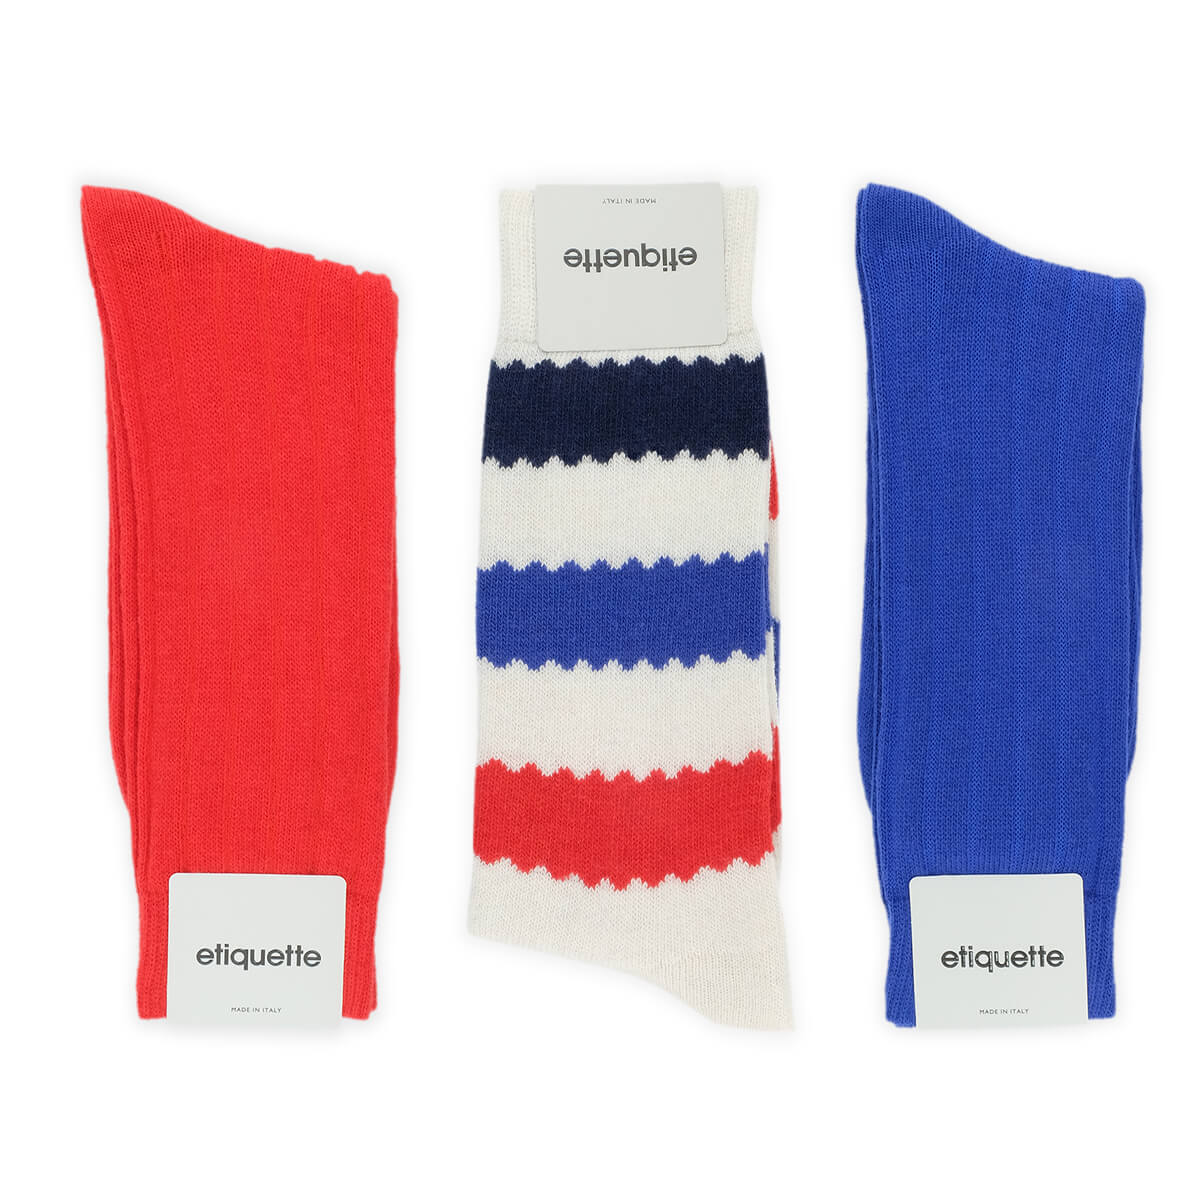 Mens Socks - The Patriot Cashmere Men's Socks Gift Box - Multi⎪Etiquette Clothiers